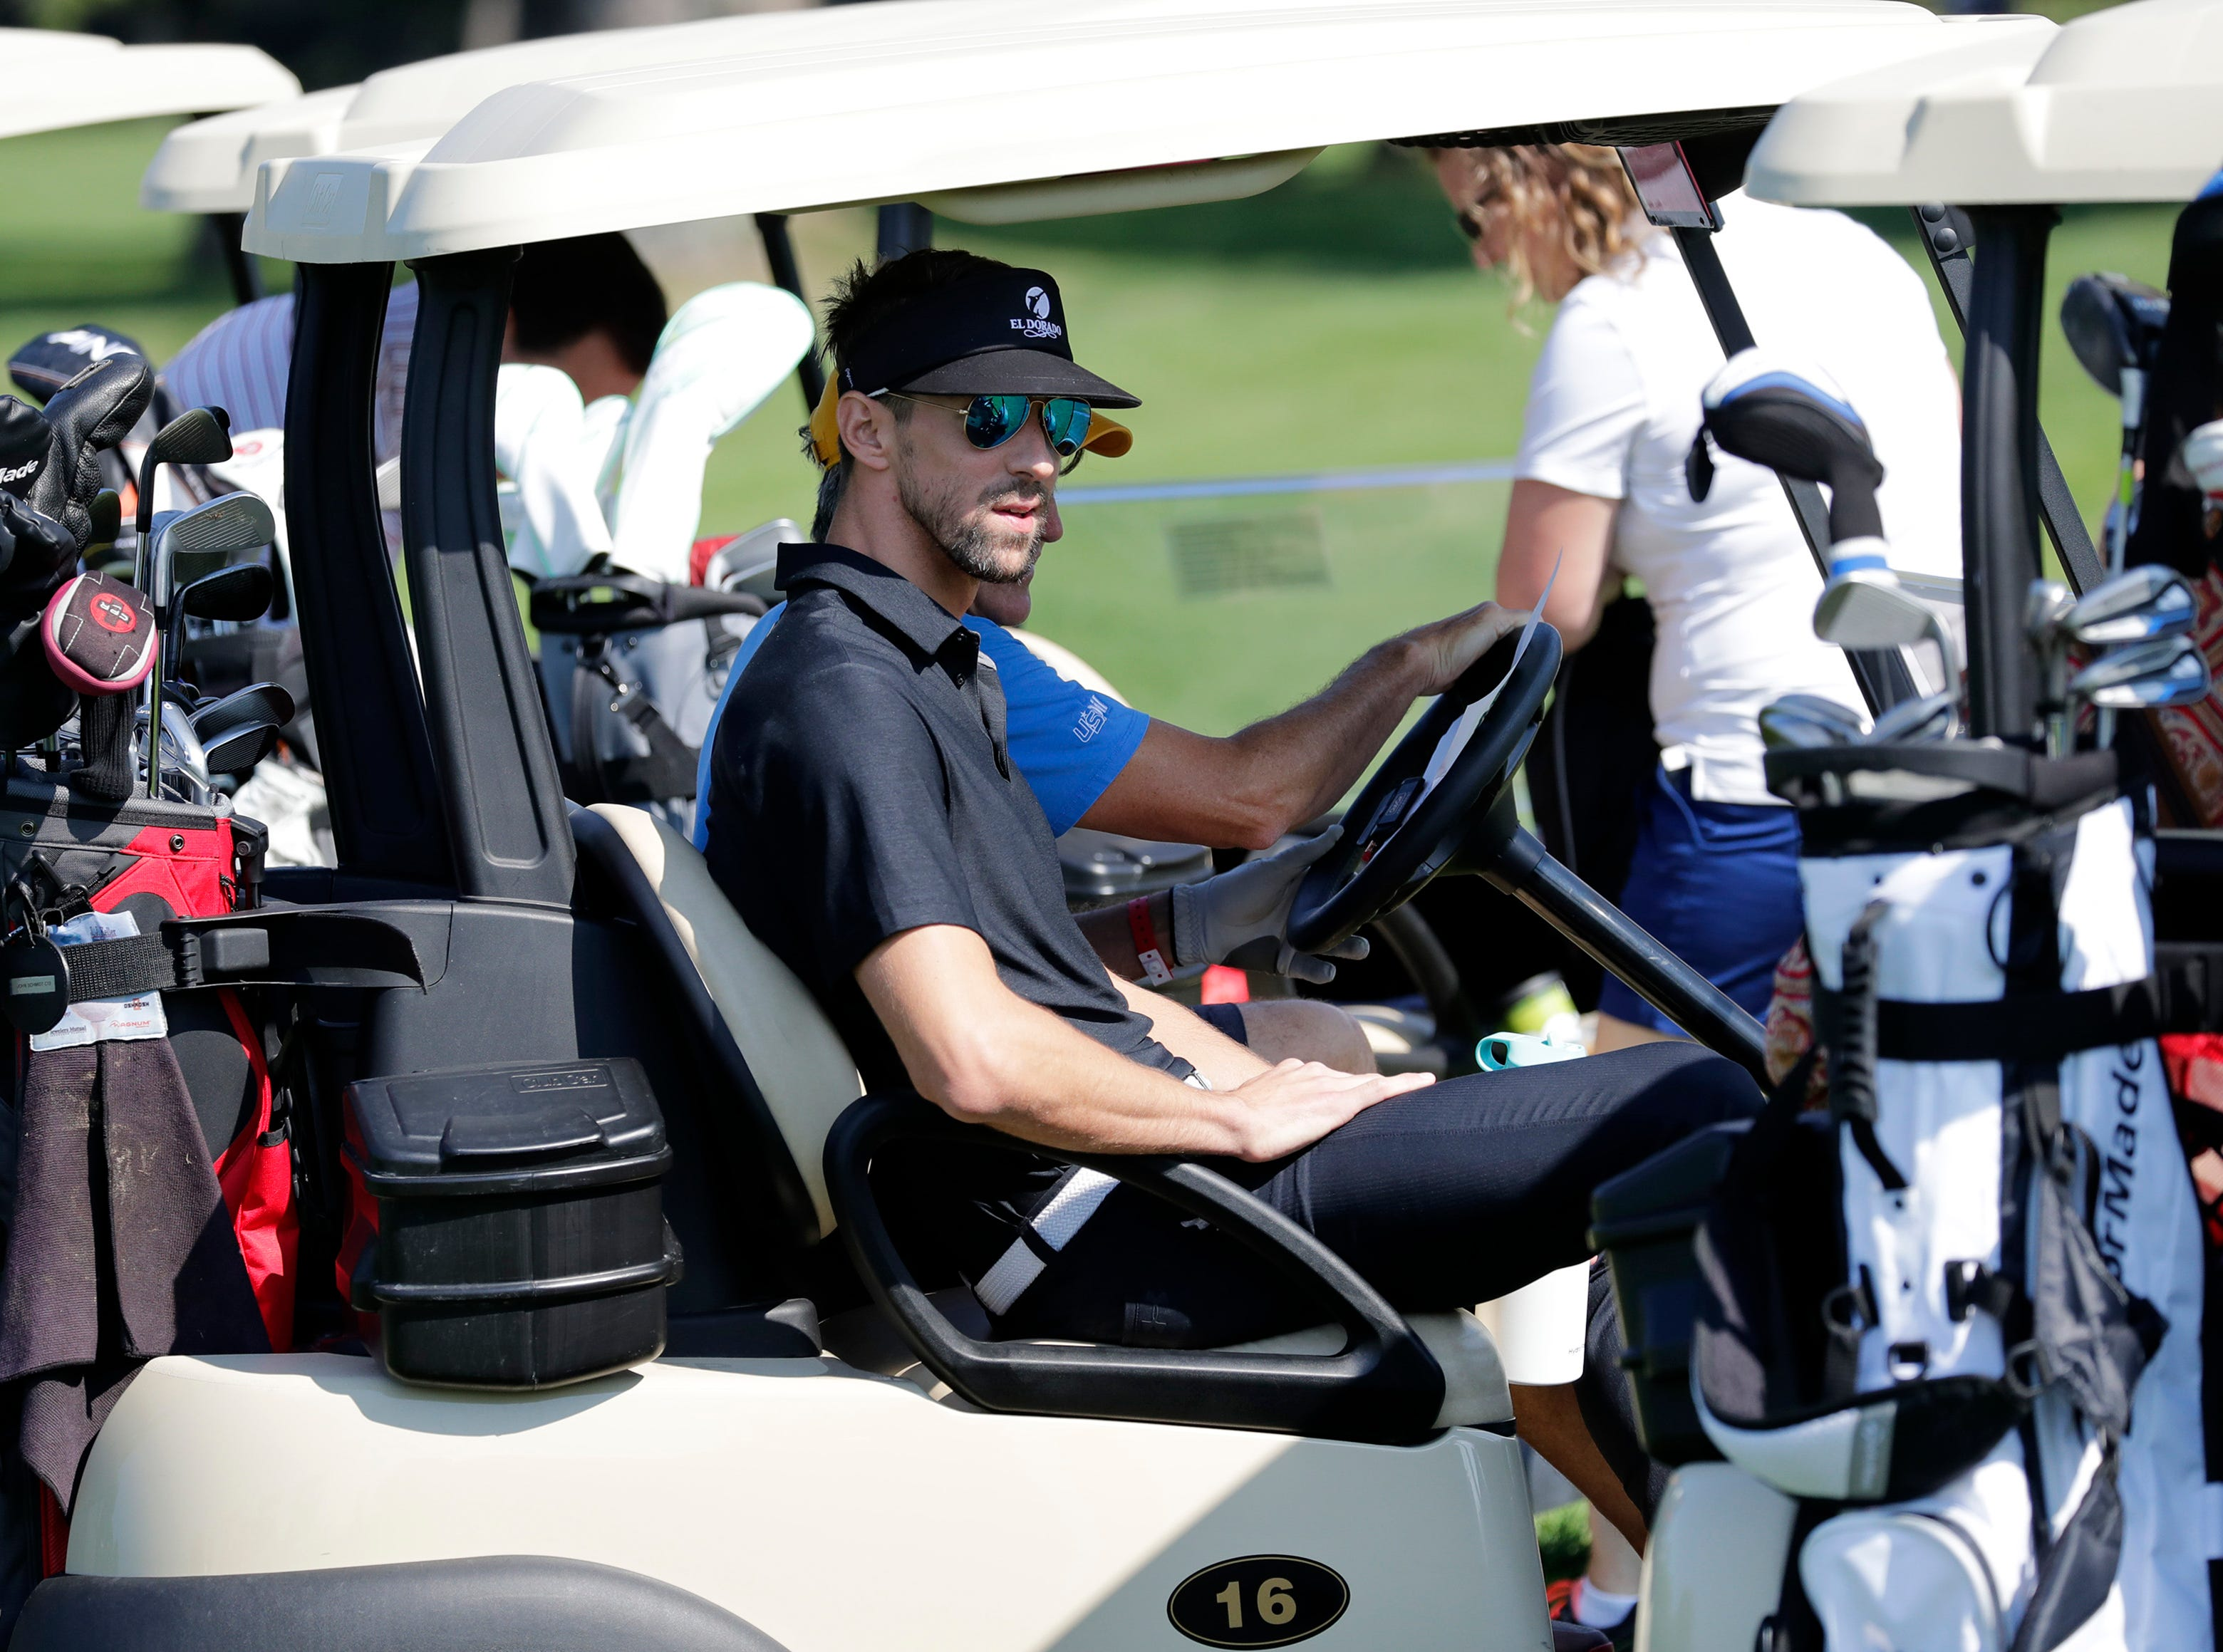 Michael Phelps gets ready to head out onto the course during the U.S. Venture Open Wednesday, Aug. 8, 2018, at North Shore Golf Club in Menasha, Wis.Danny Damiani/USA TODAY NETWORK-Wisconsin